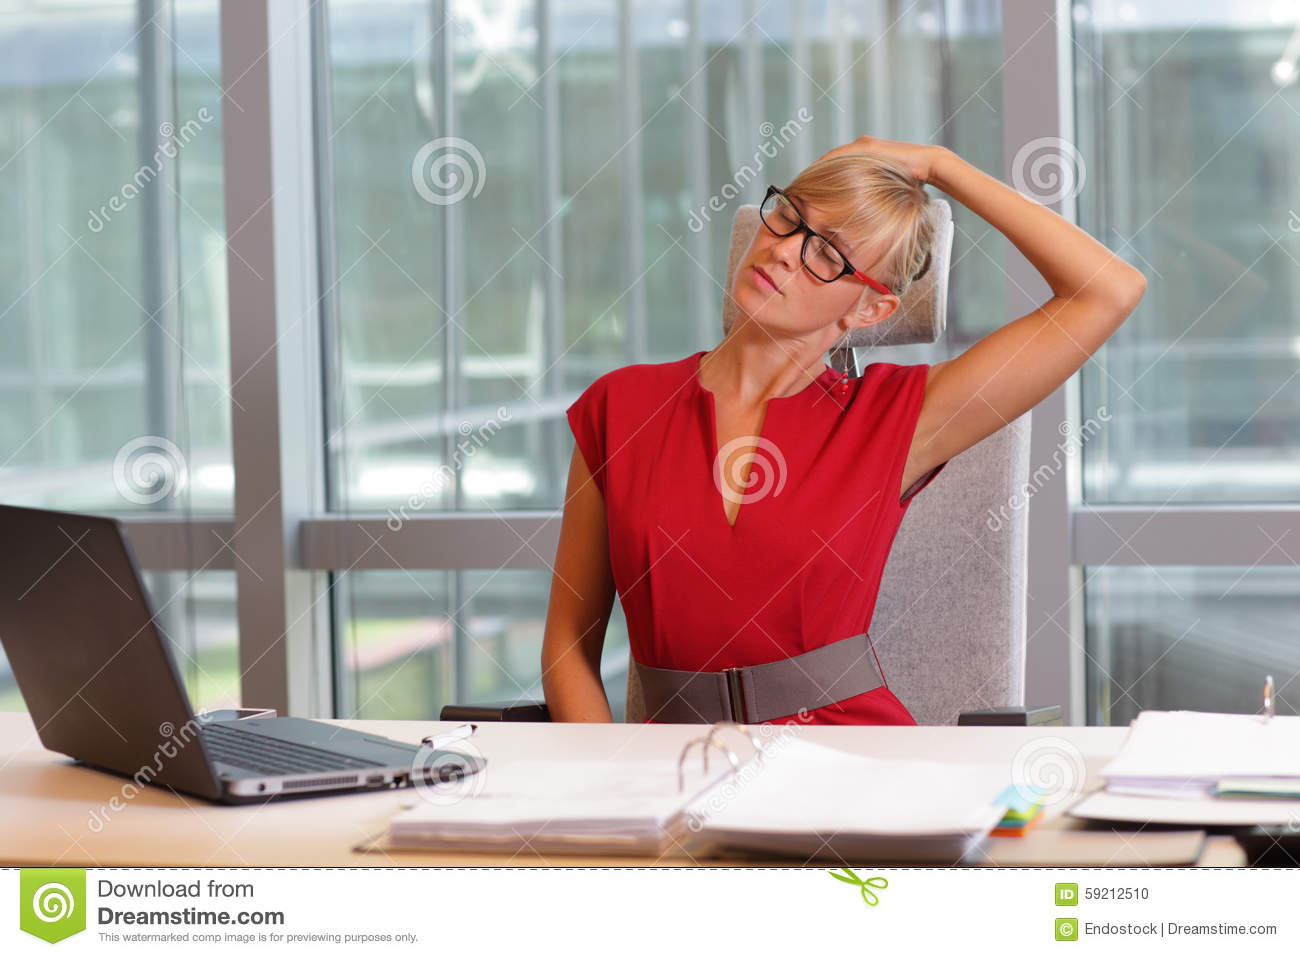 short break for exercise on chair in office - Office Chair For Short Person